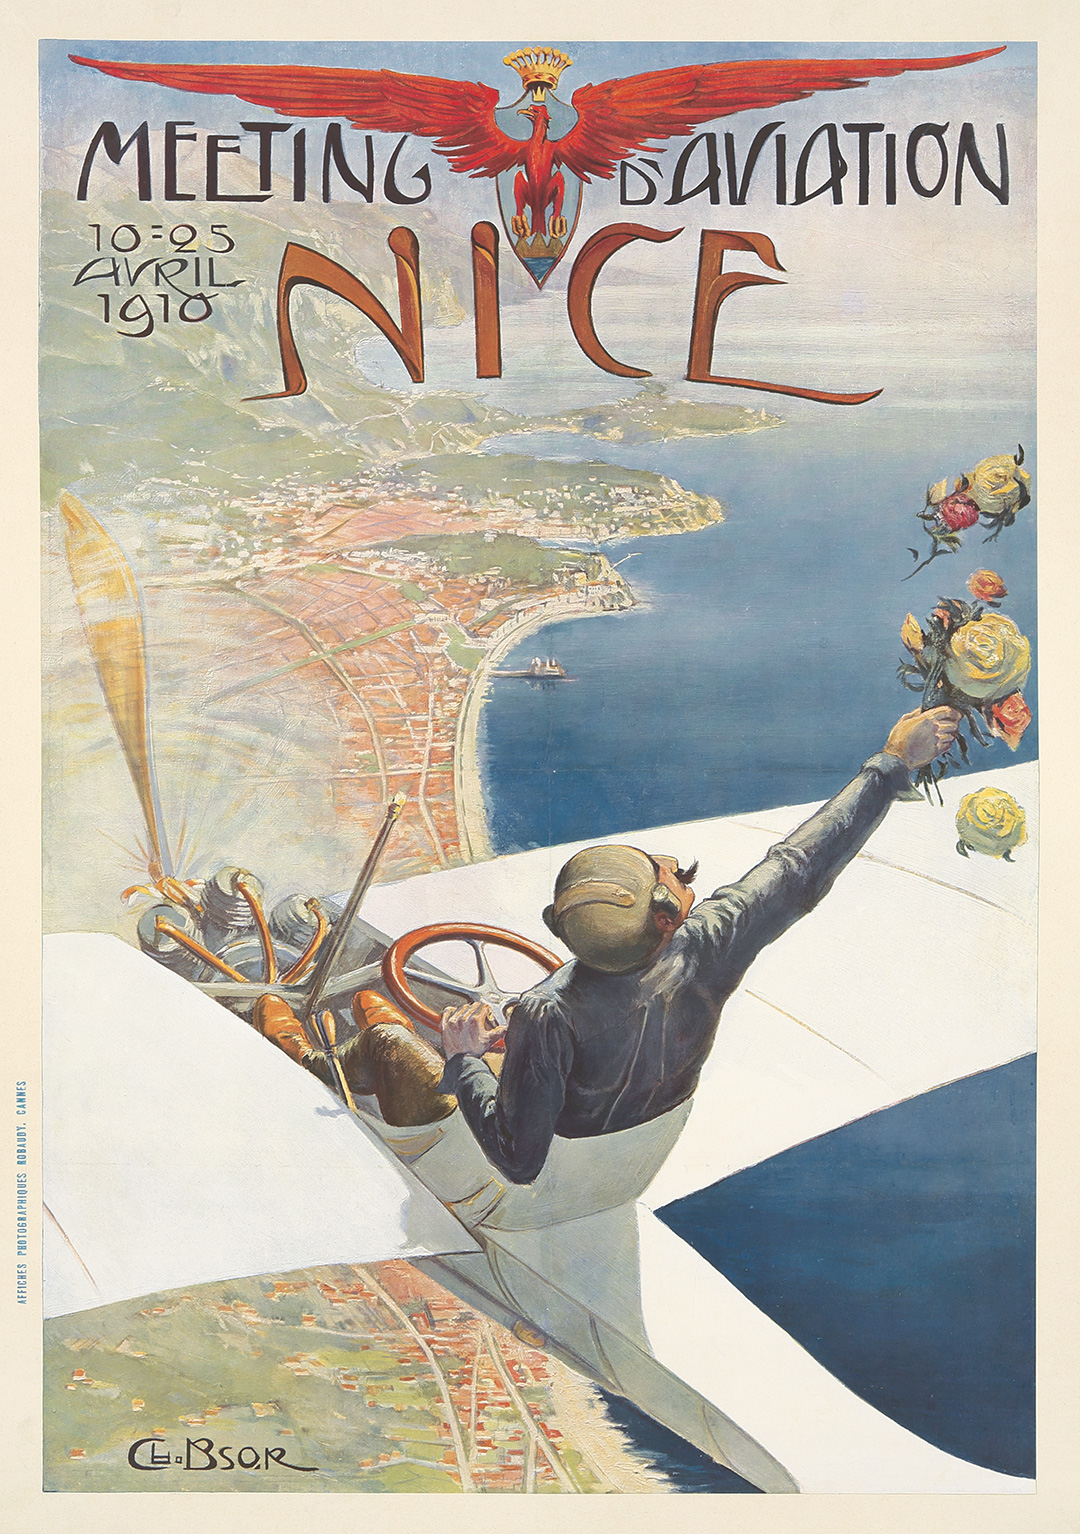 109. Meeting d'Aviation / Nice. 1910.